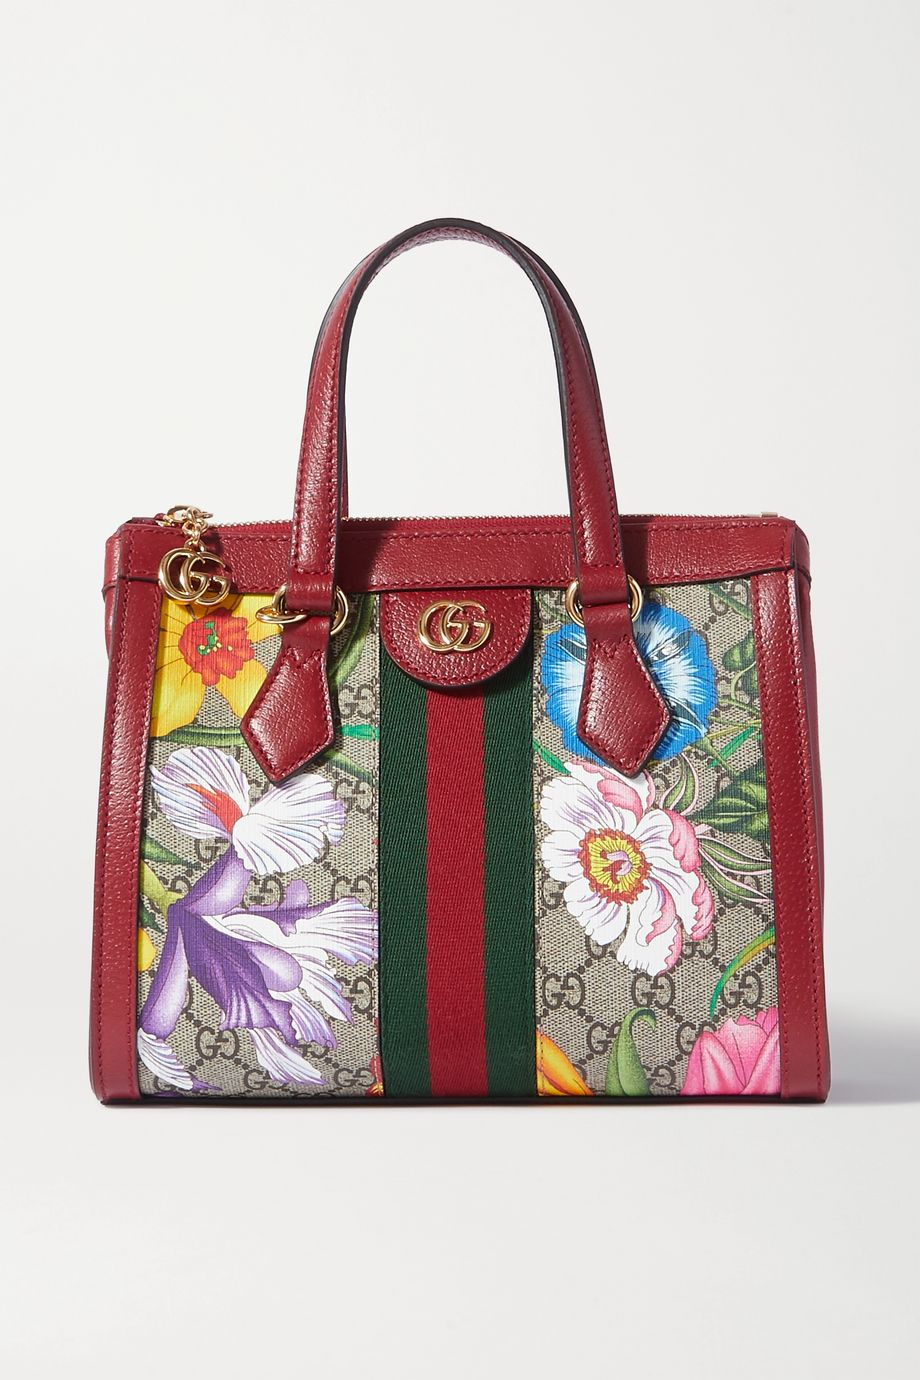 Gucci Ophidia mini textured leather-trimmed printed coated-canvas tote